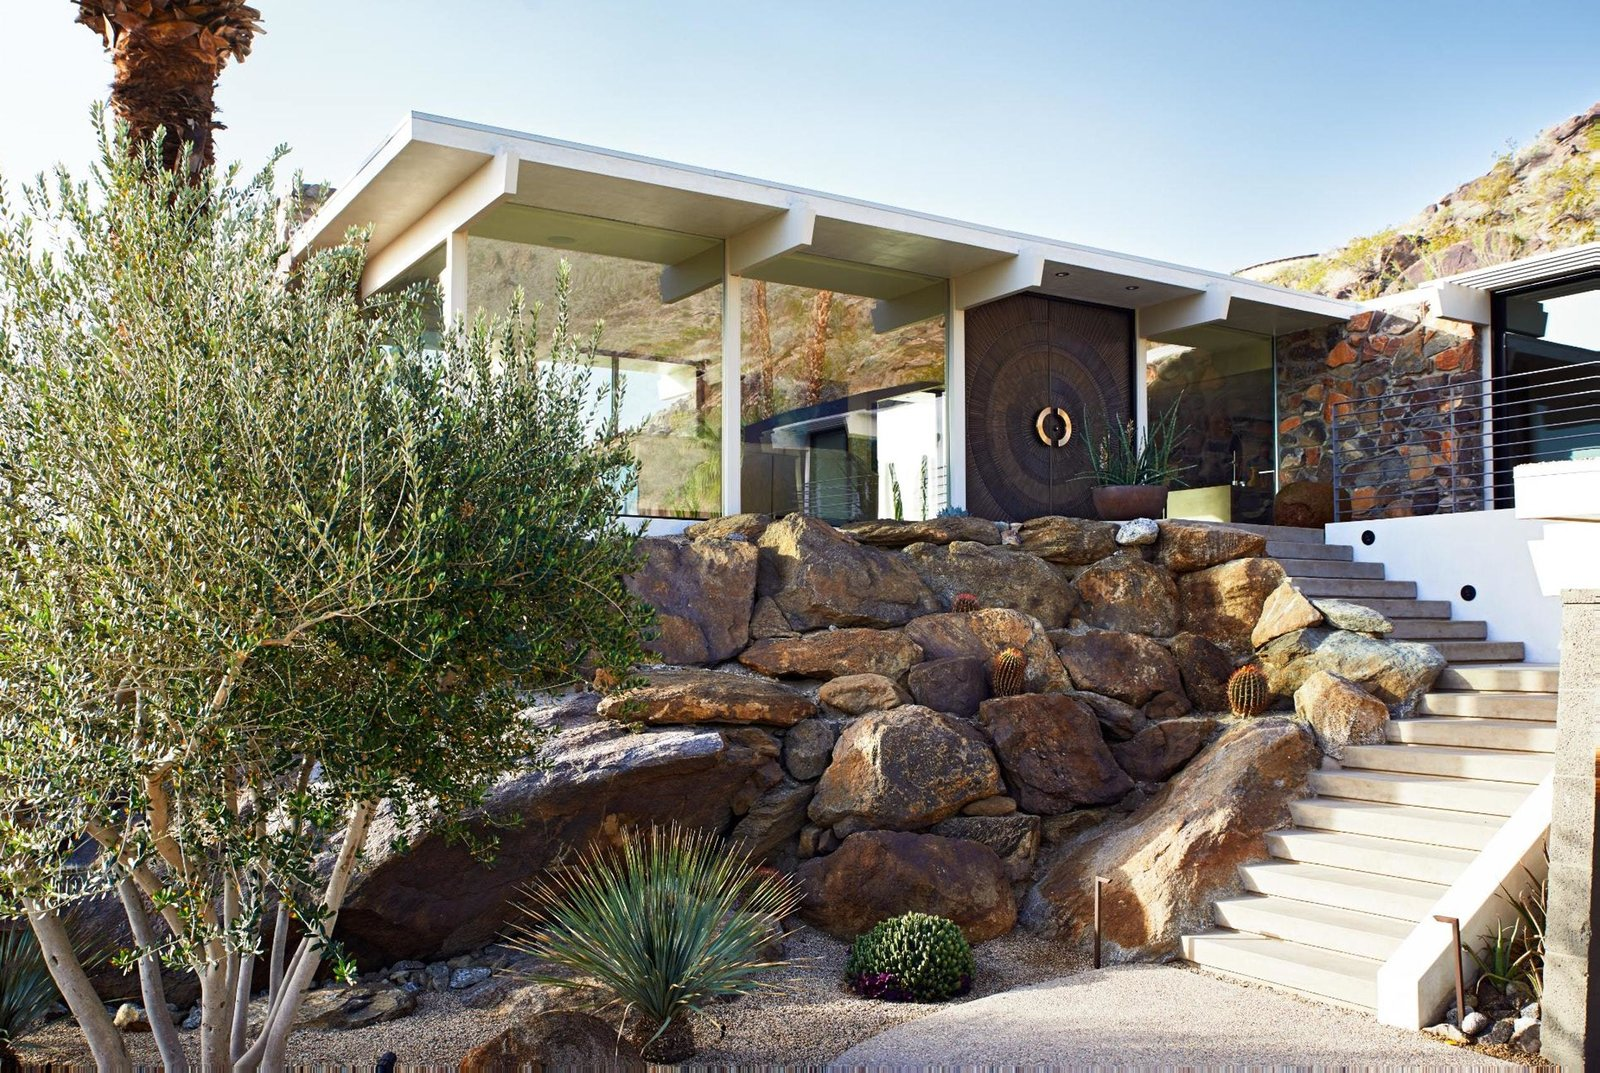 Exterior, Flat RoofLine, Glass Siding Material, House Building Type, and Mid-Century Building Type  On the Rocks